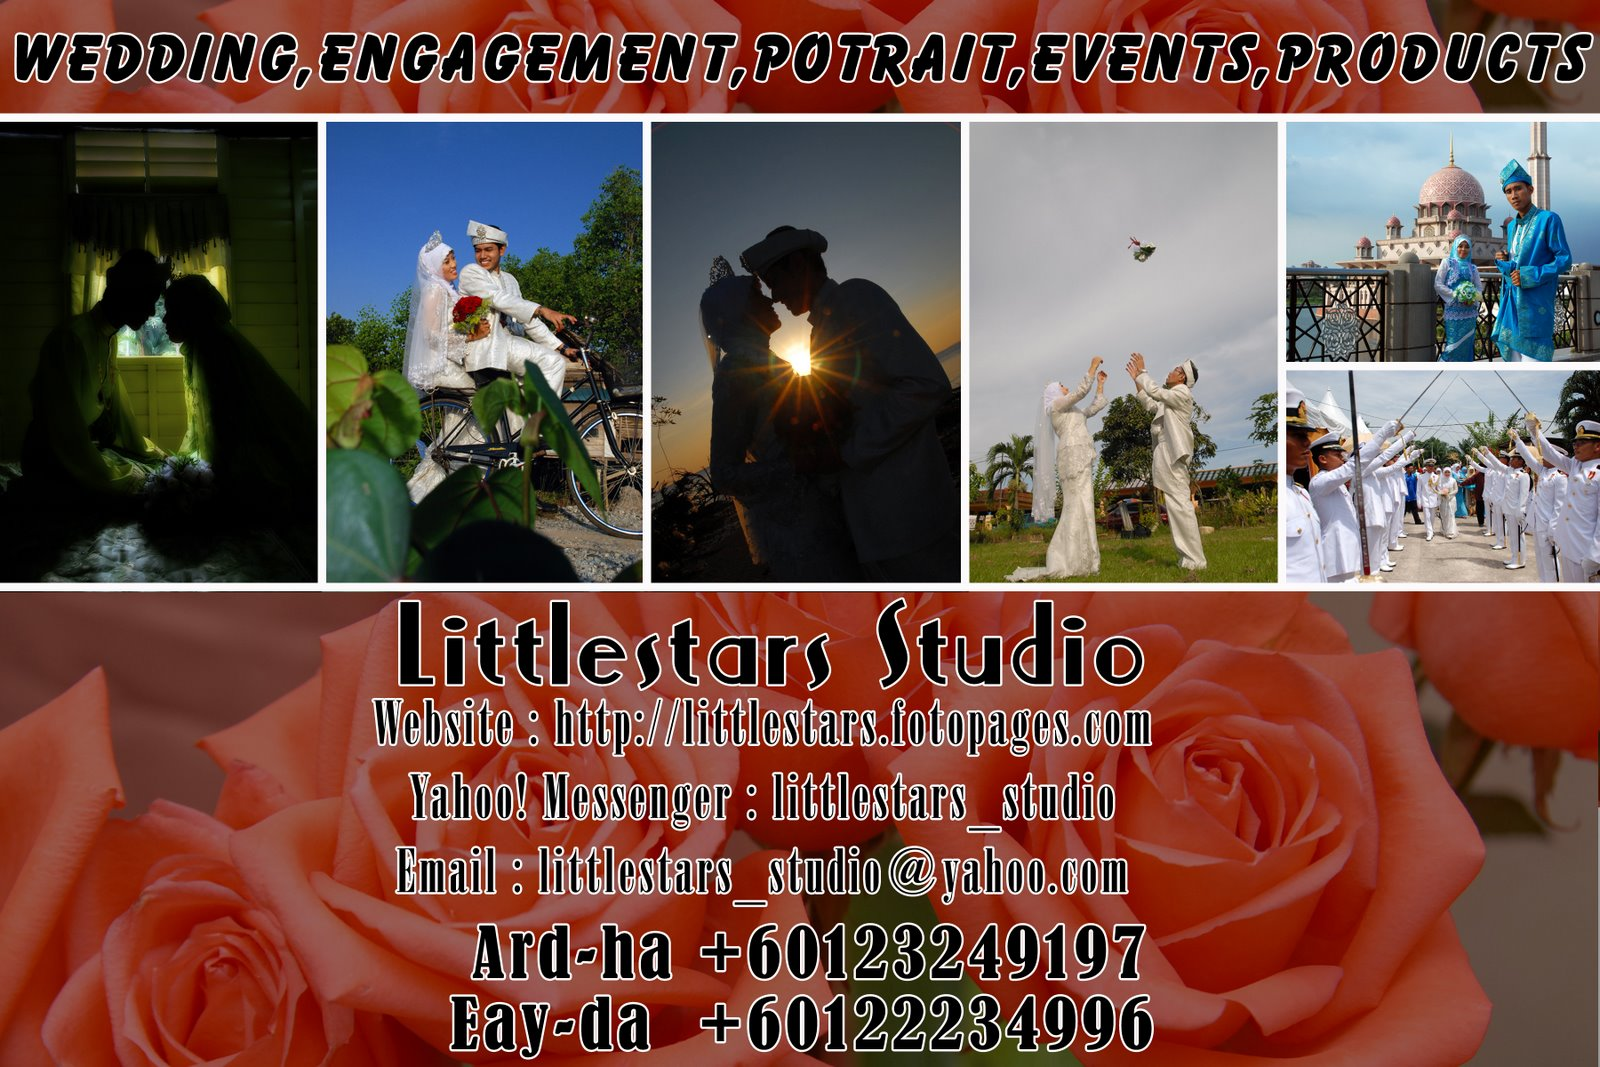 Wedding,Engagement,Portrait,Events,Products